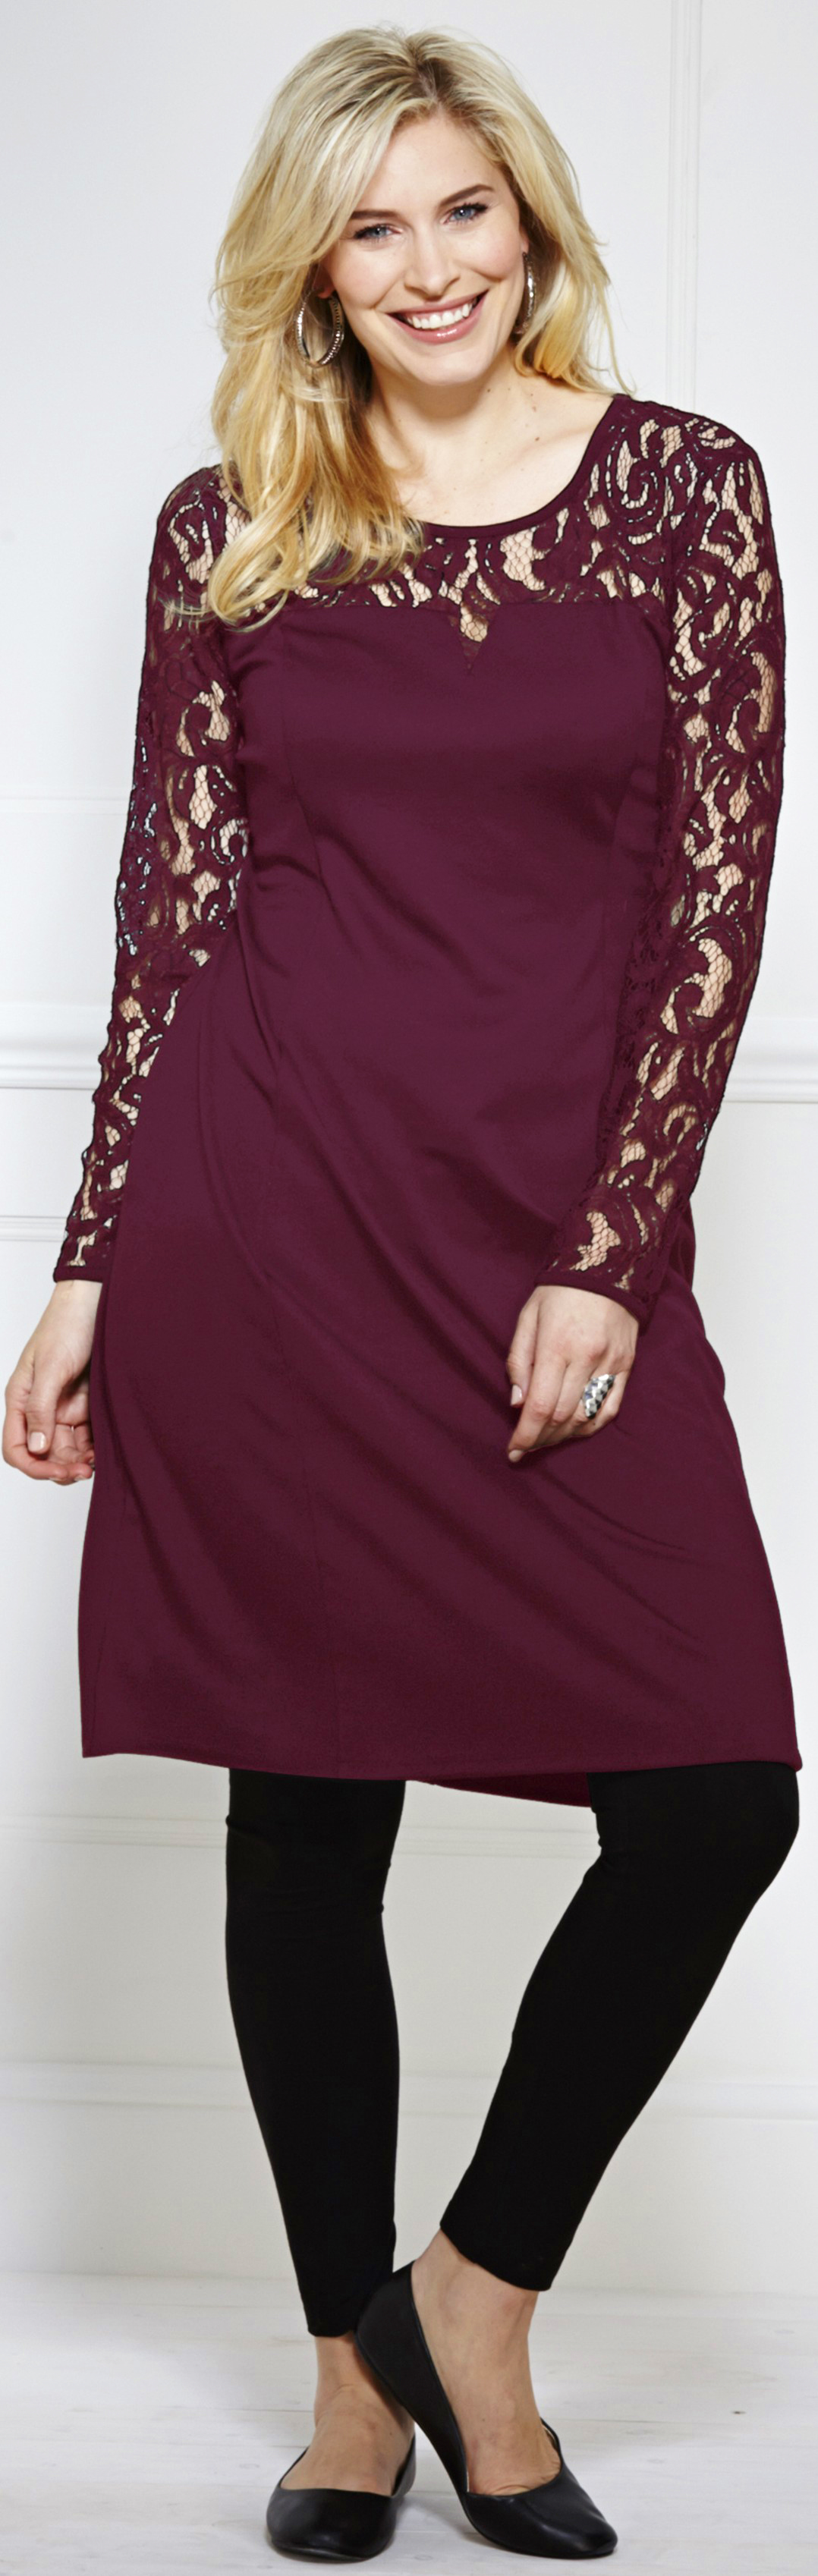 1da74f3d5e5 Berry (dark red) coloured dress for a casual party outfit - Marisota - http